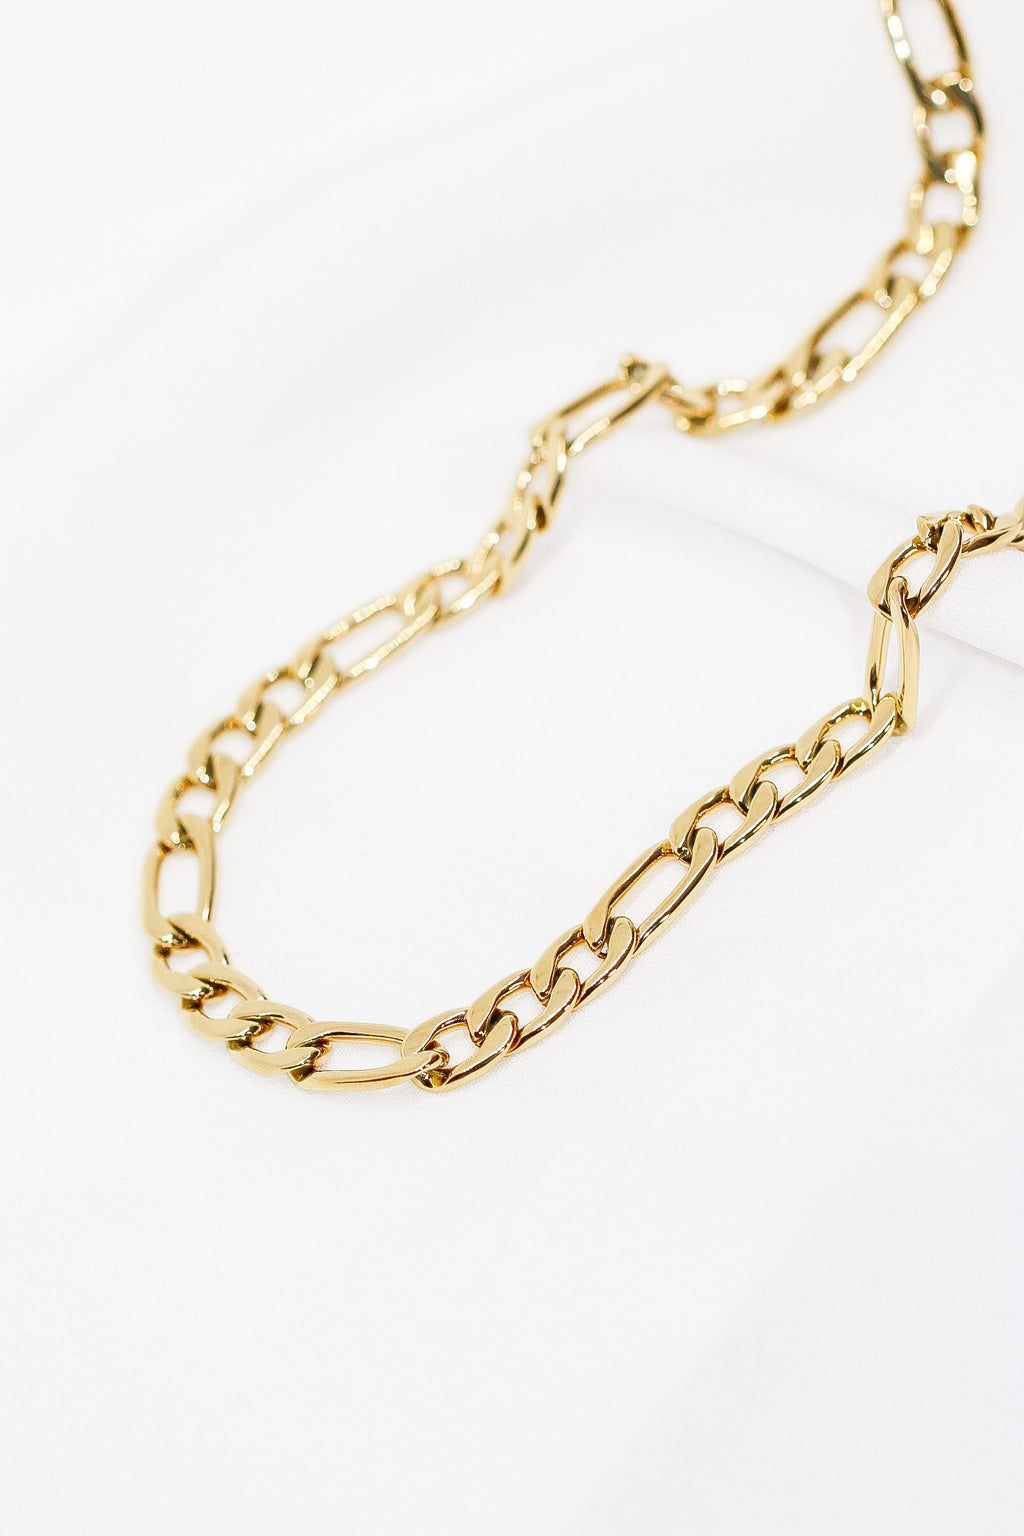 TAHU CHAIN - Taimana Boutique